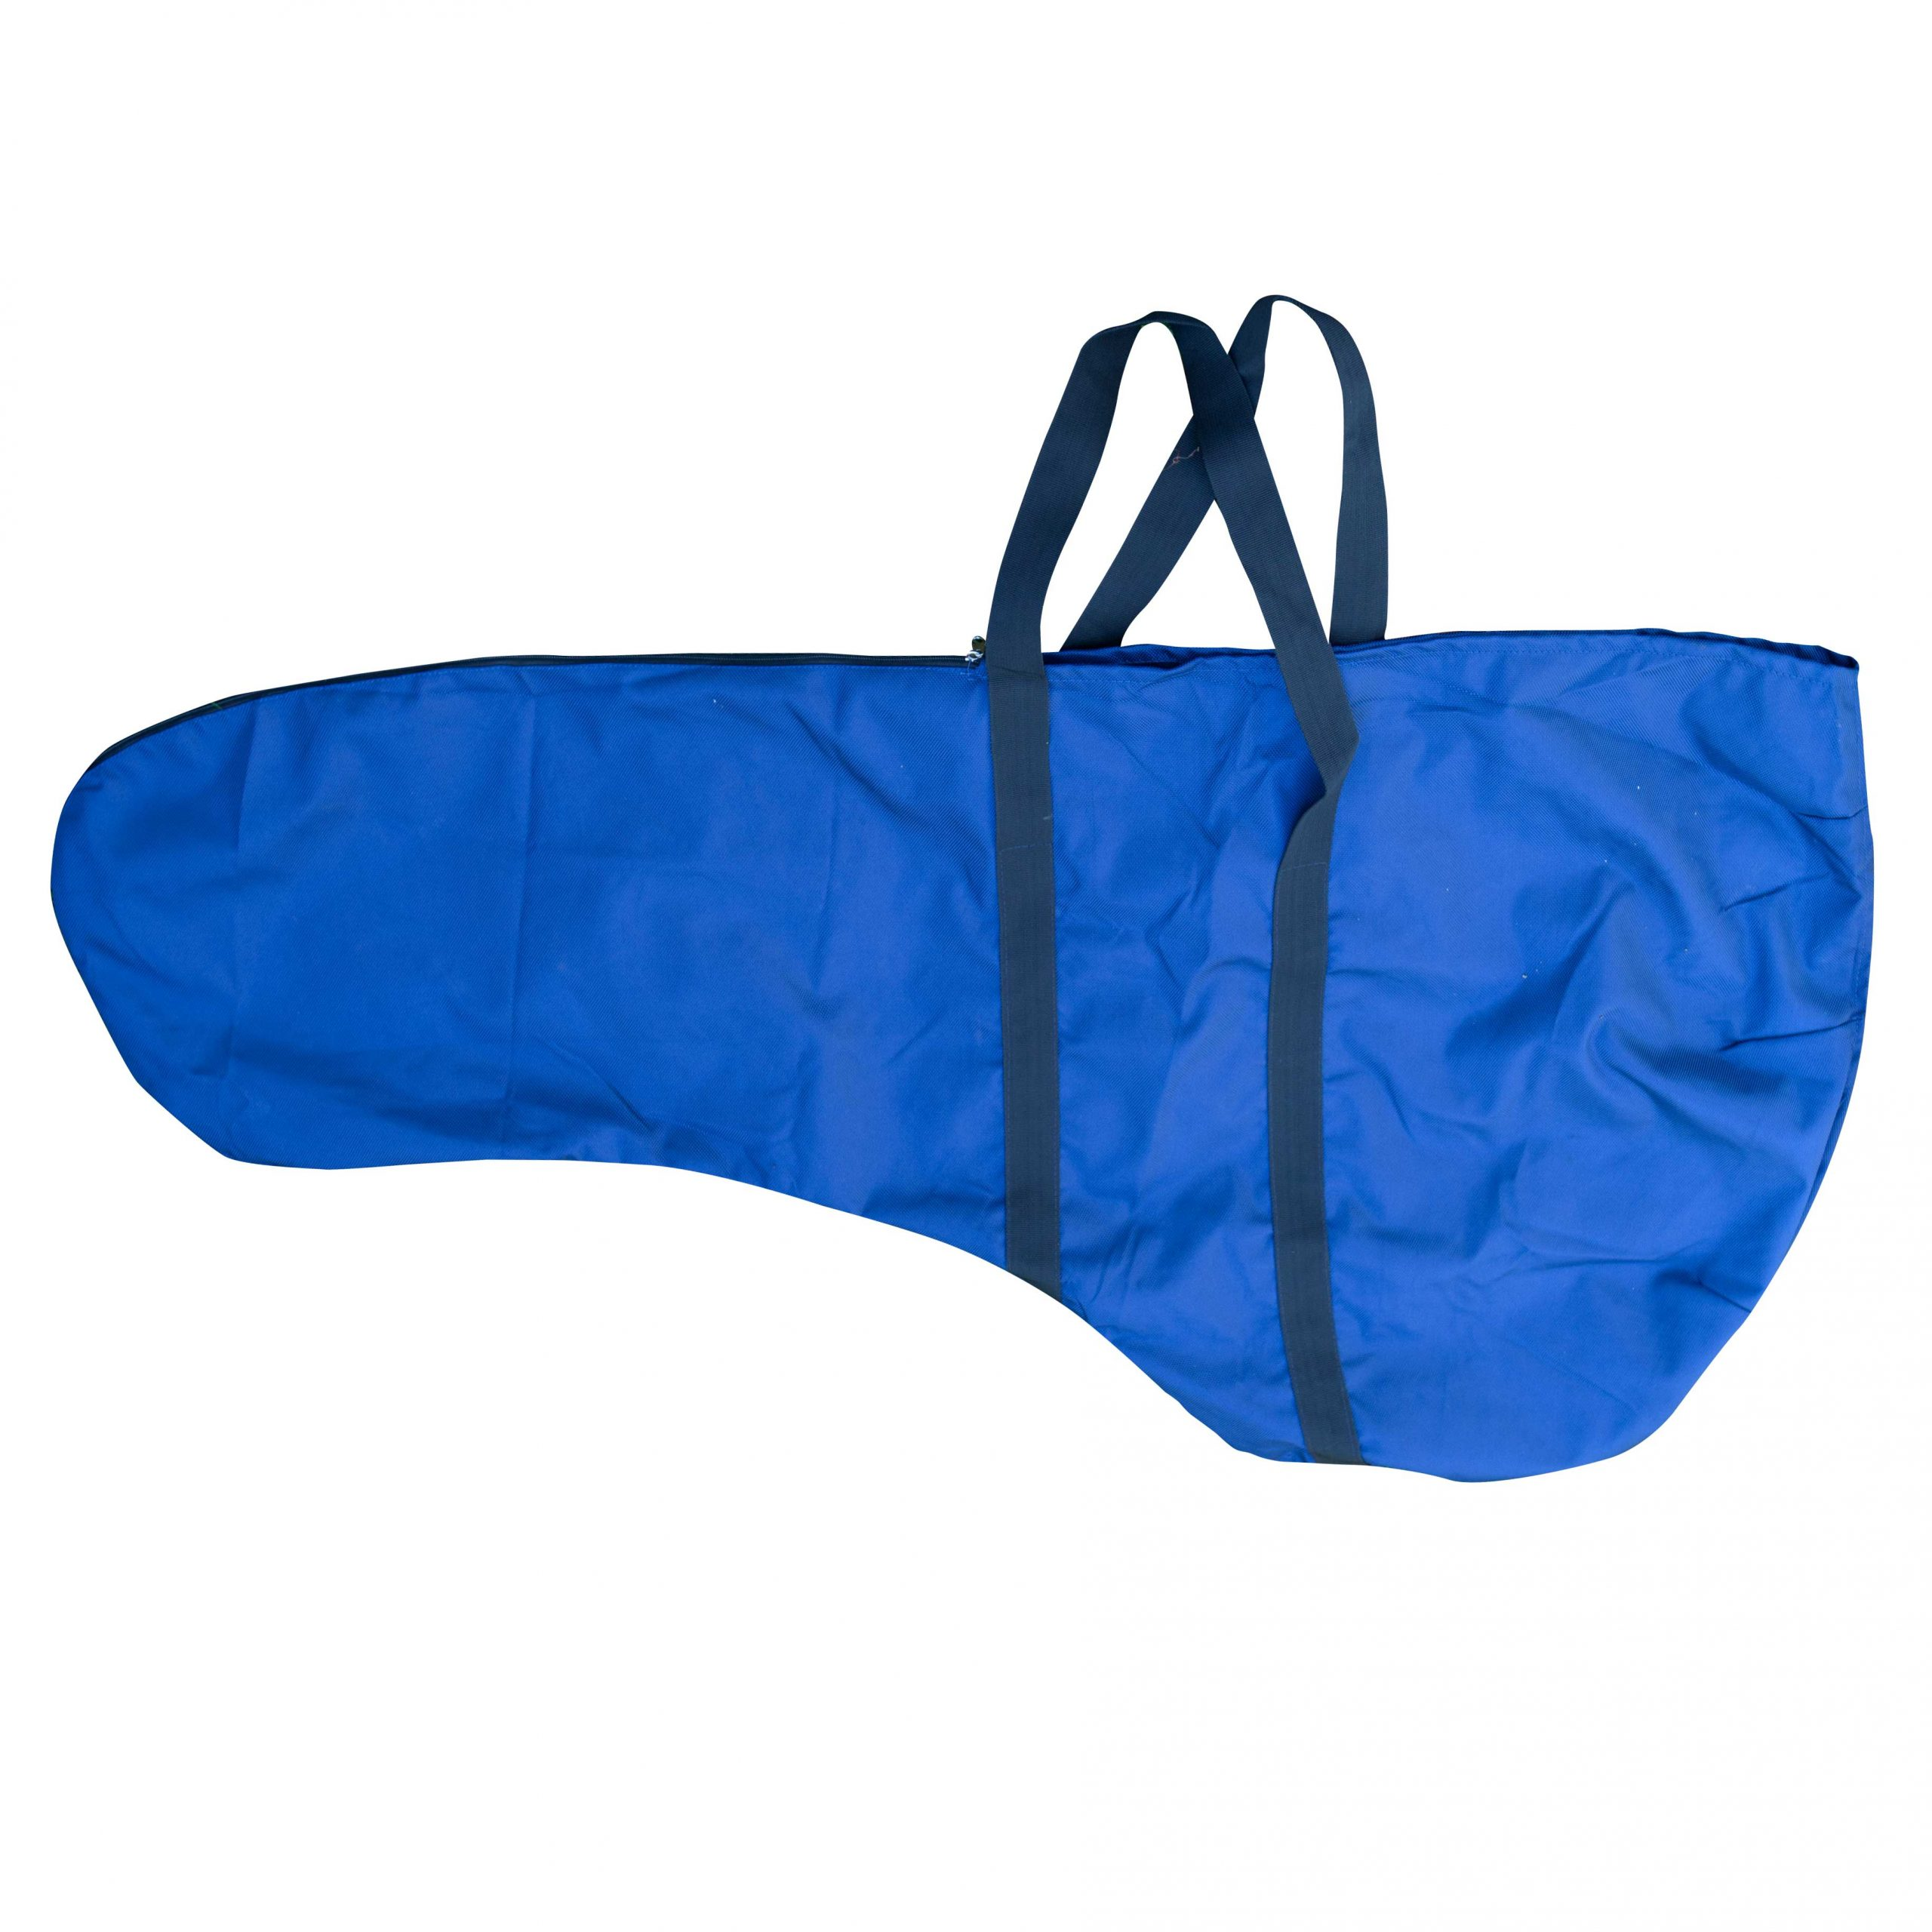 Deluxe Propeller Bag with Carry Handles